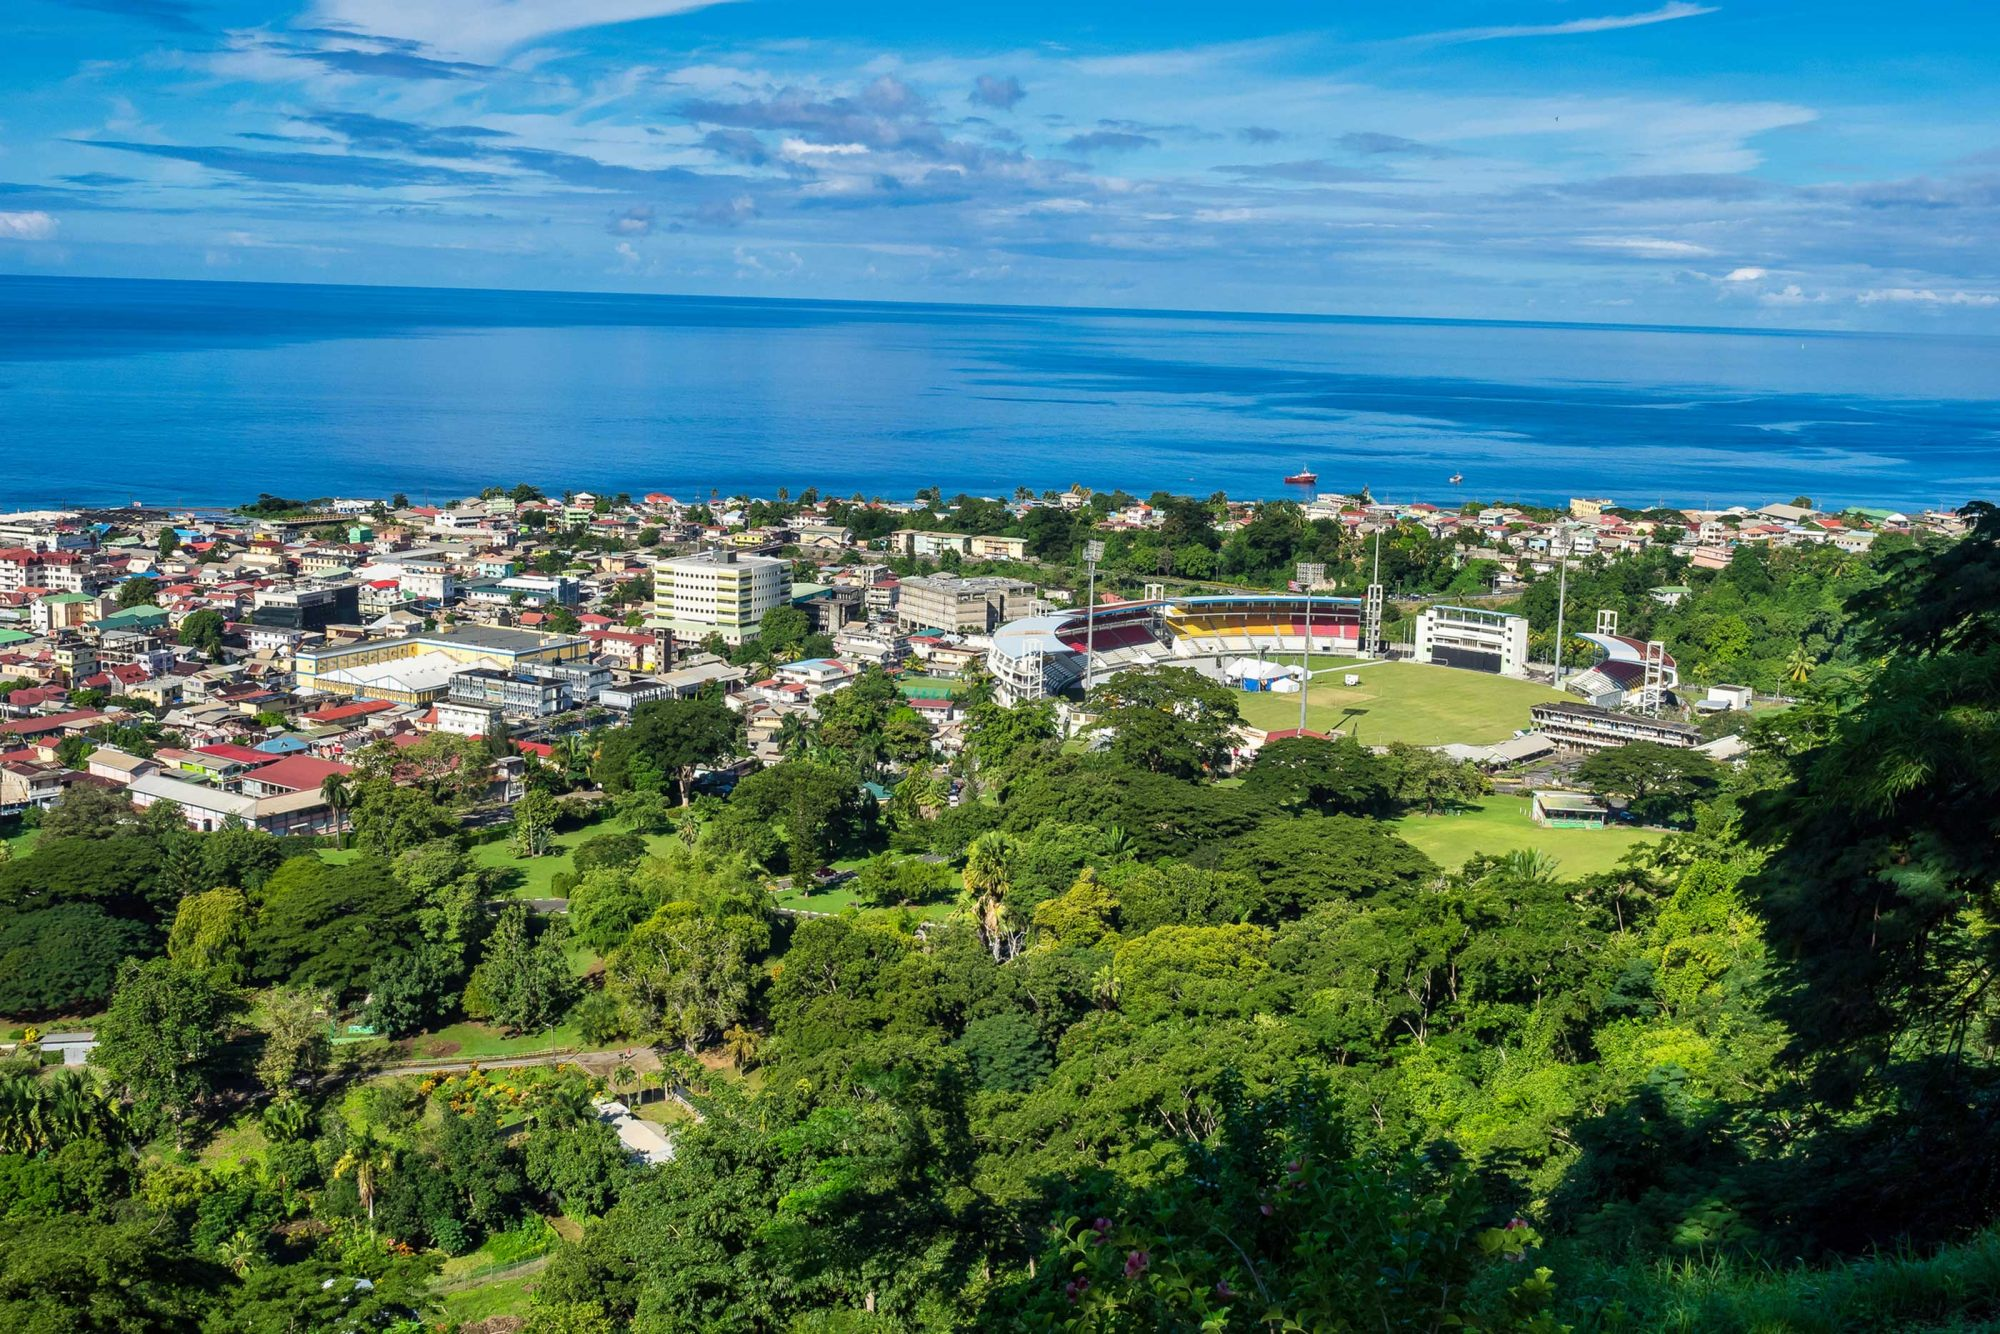 Scenic view of Roseau town and sea, Dominica island. Seen from the small mountain Morne Bruce